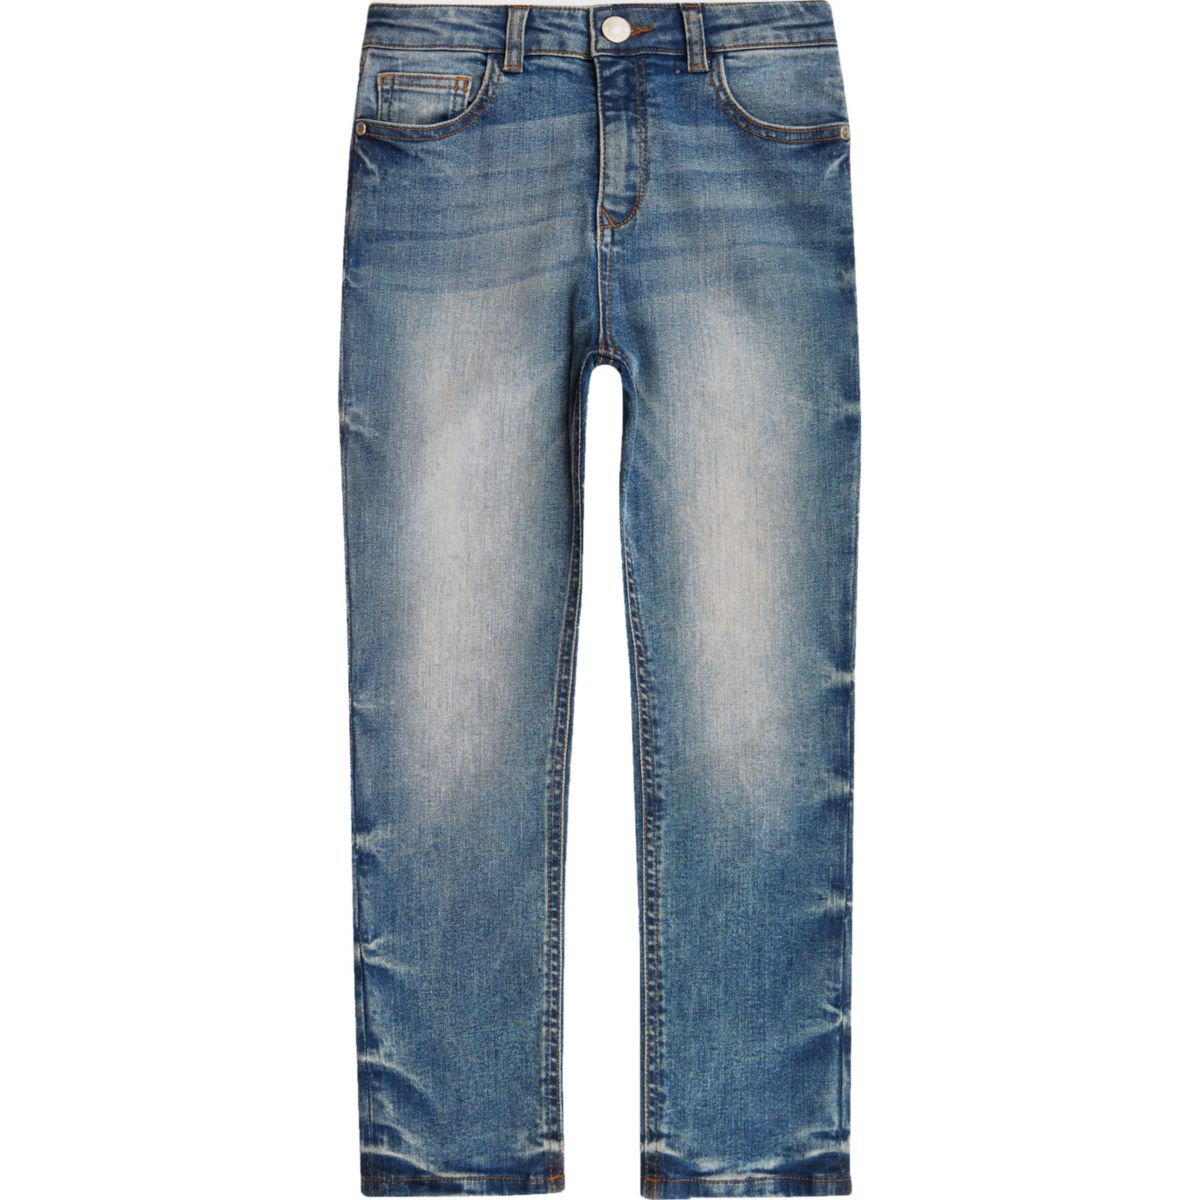 Shop for boys slim fit jeans online at Target. Free shipping on purchases over $35 and save 5% every day with your Target REDcard.